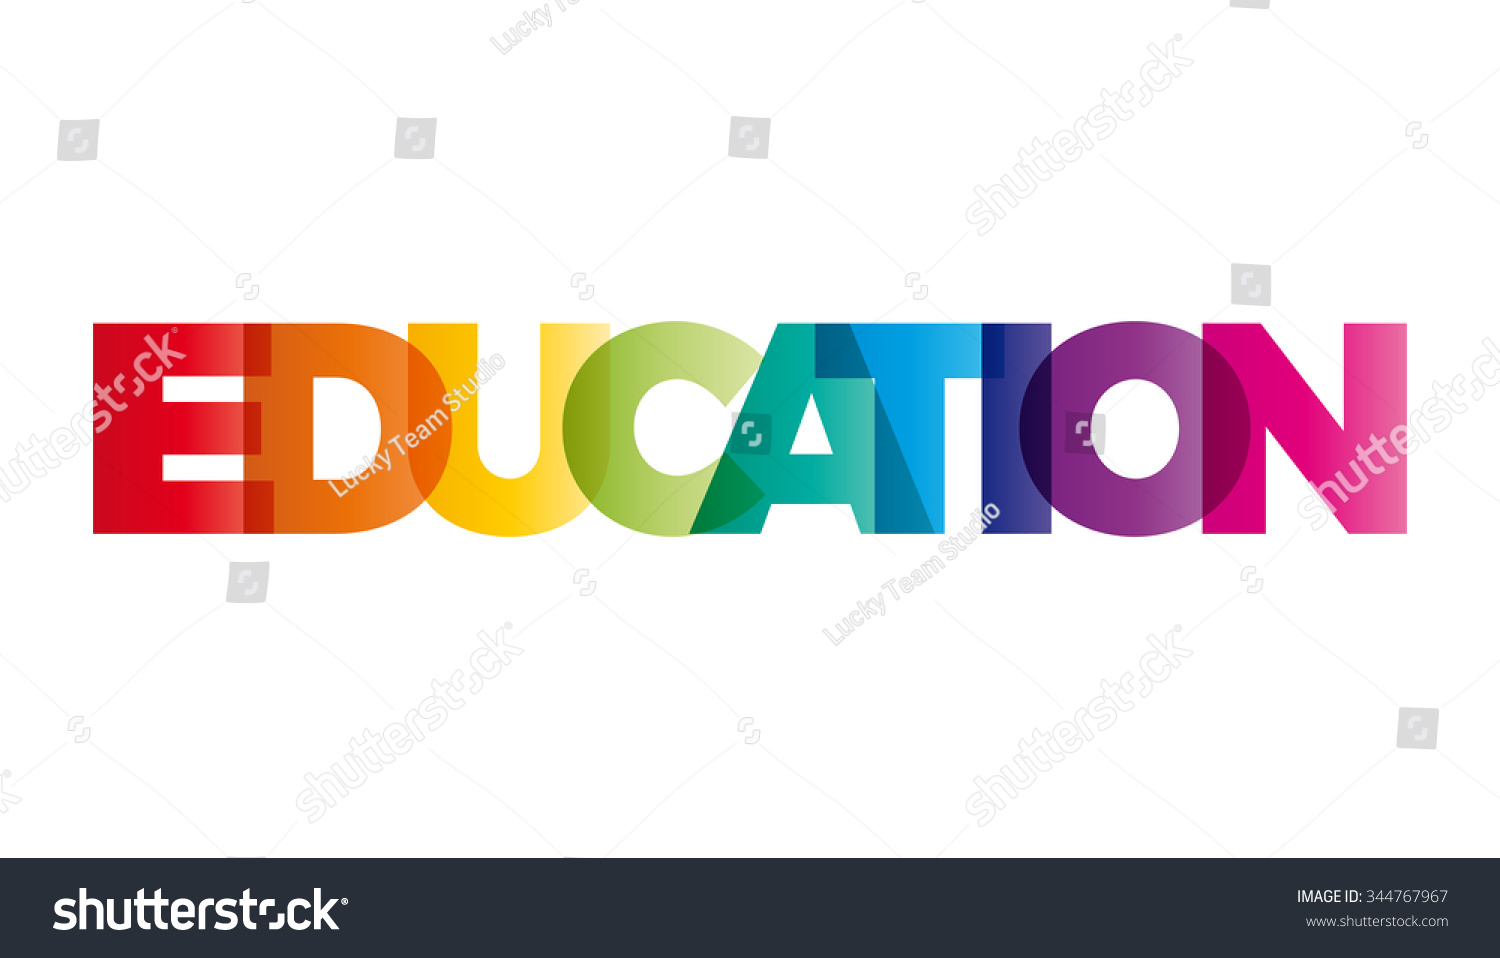 stock-vector-the-word-education-vector-banner-with-the-text-colored-rainbow-344767967.jpg